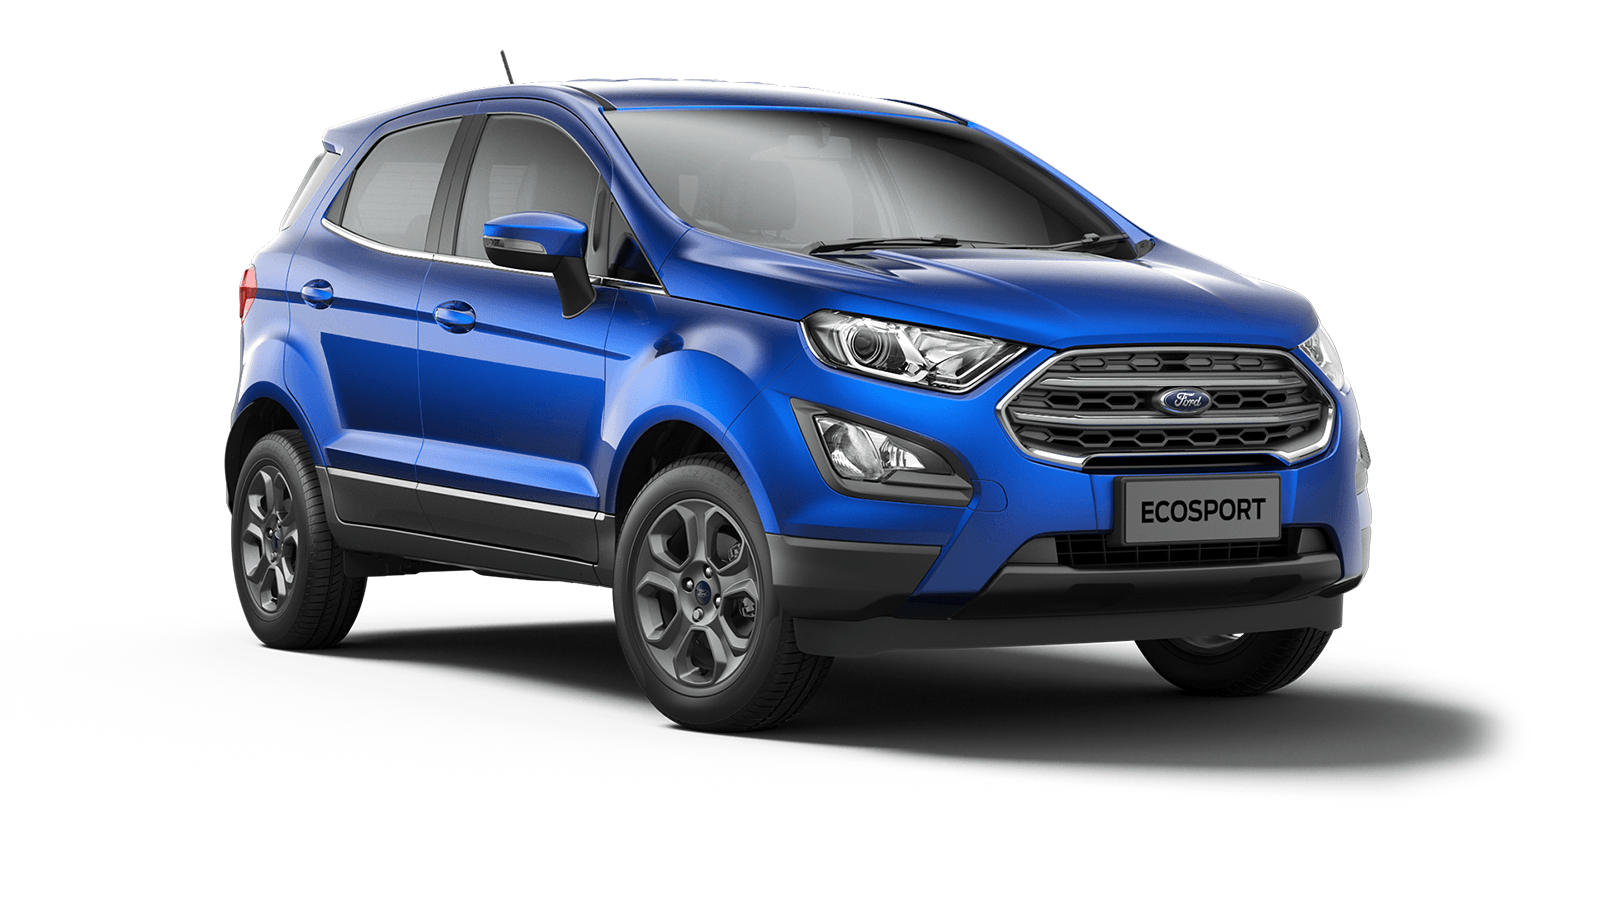 https://www.dealerinternet.co.uk/images/B515%20ECOSPORT/2019/5%20Door/Zetec/Lightning-Blue.png